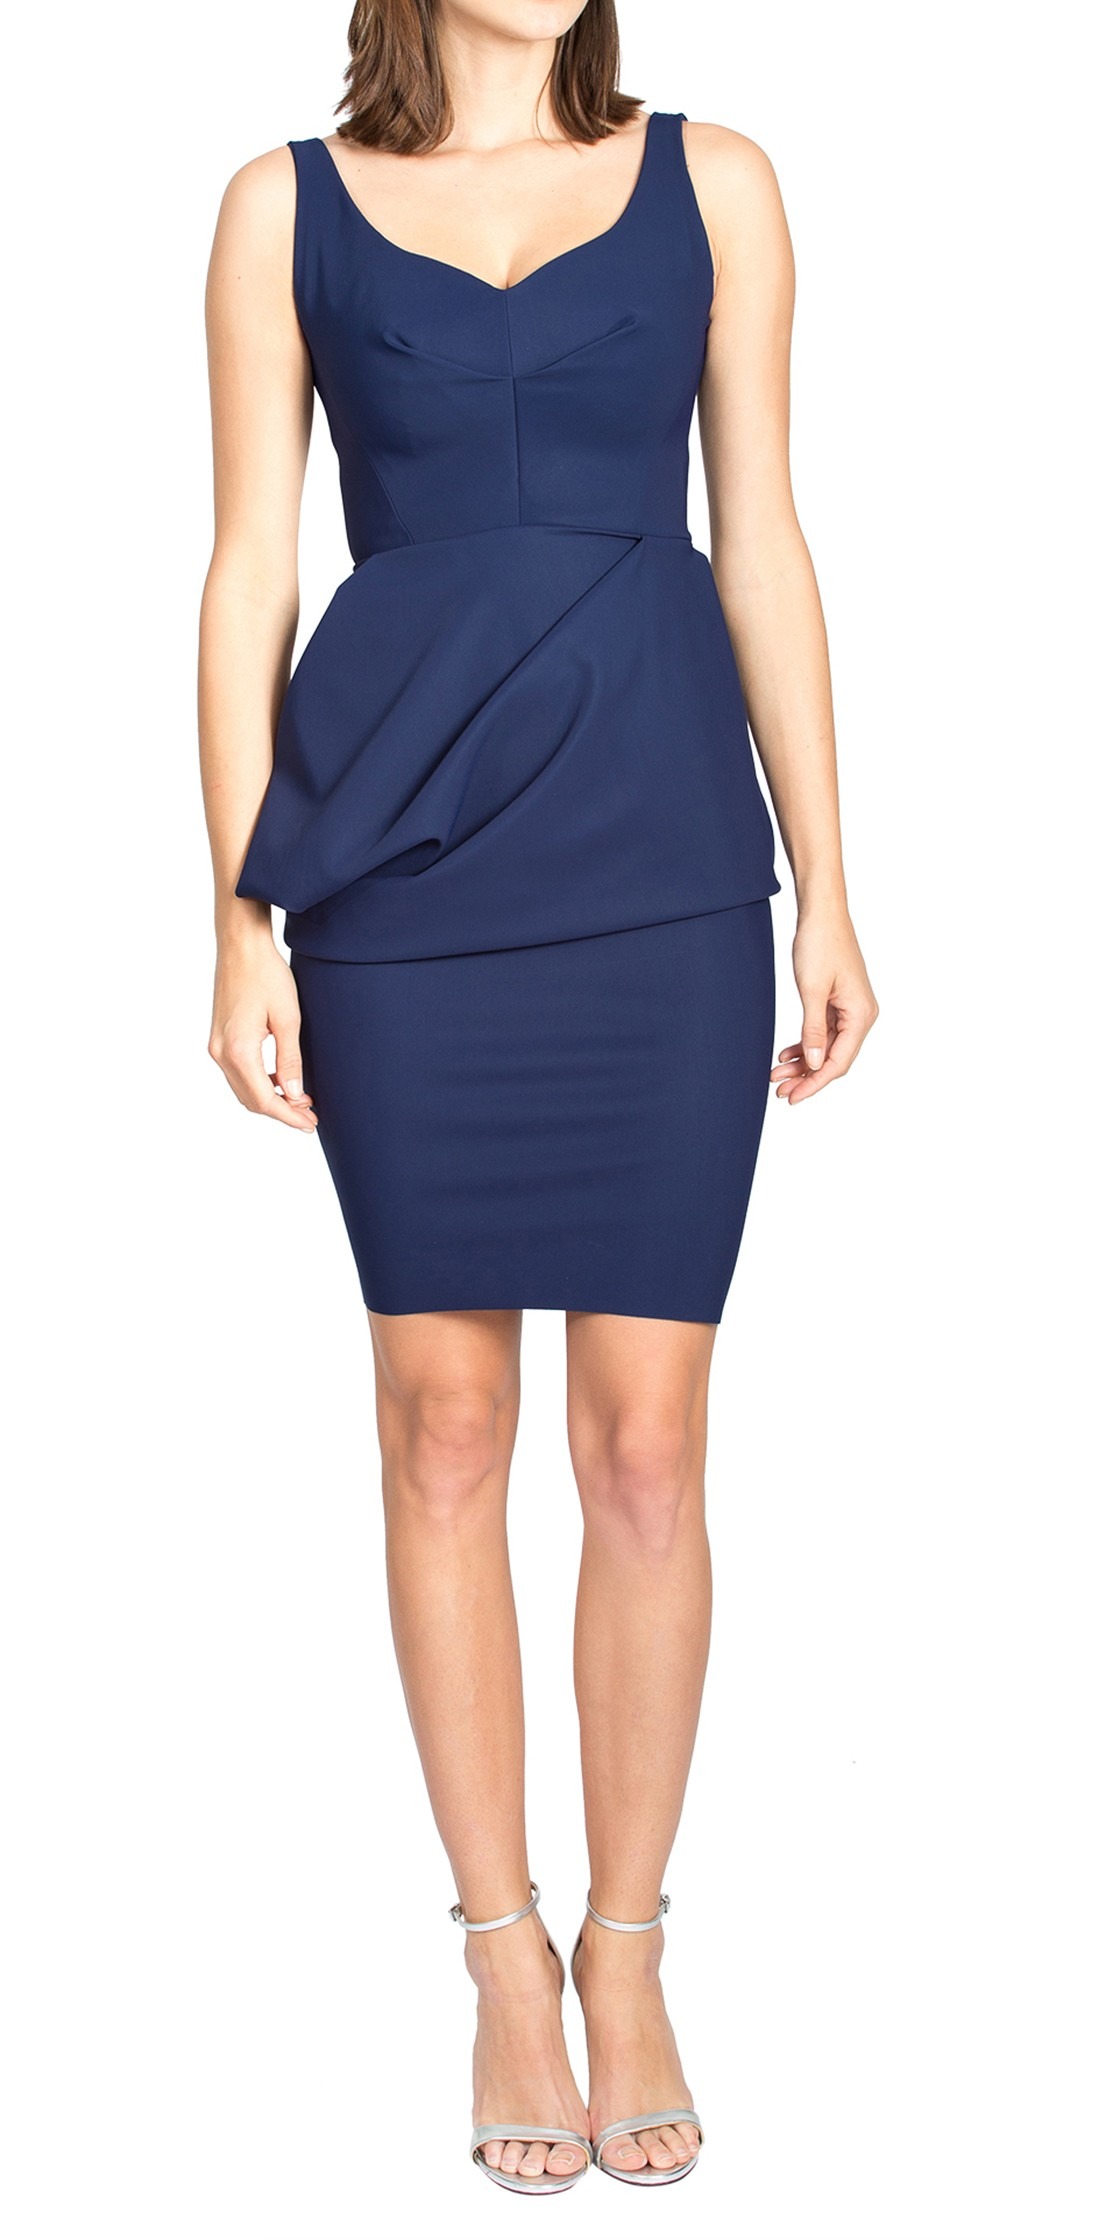 Greta Constantine Asymmetric Sleeveless Dress